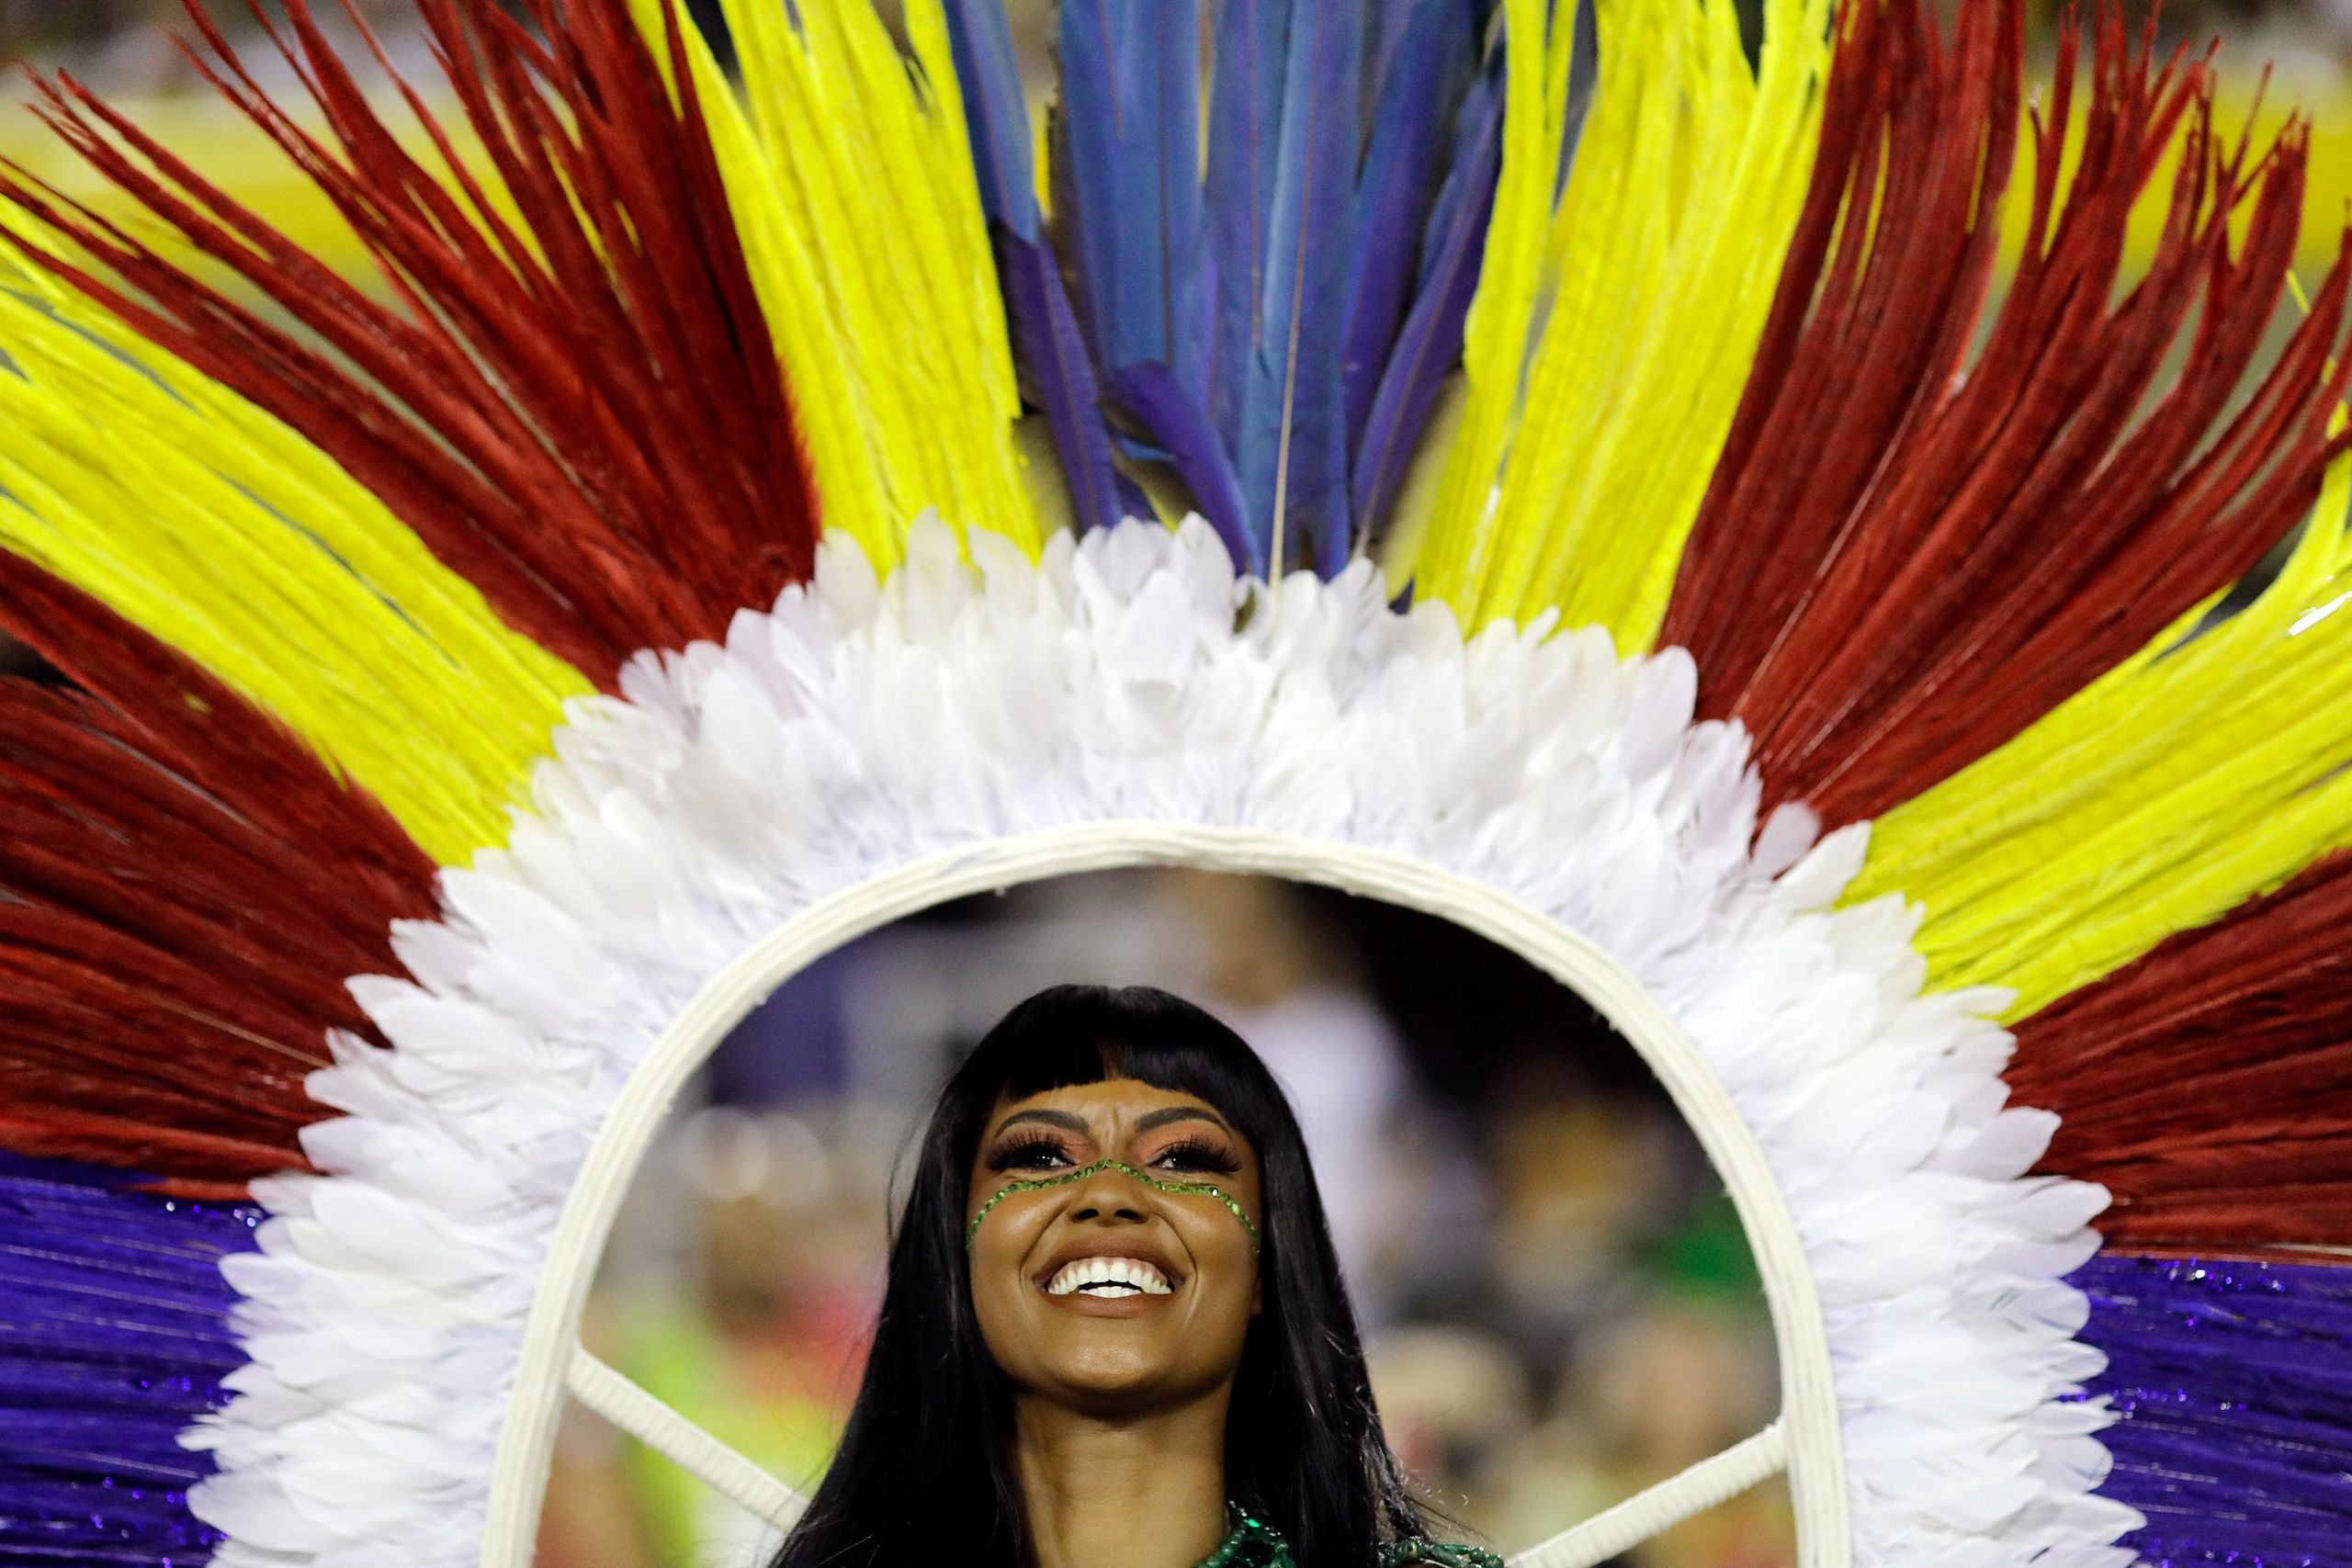 A performer from the Imperatriz Leopoldinense samba school takes part in Carnival.